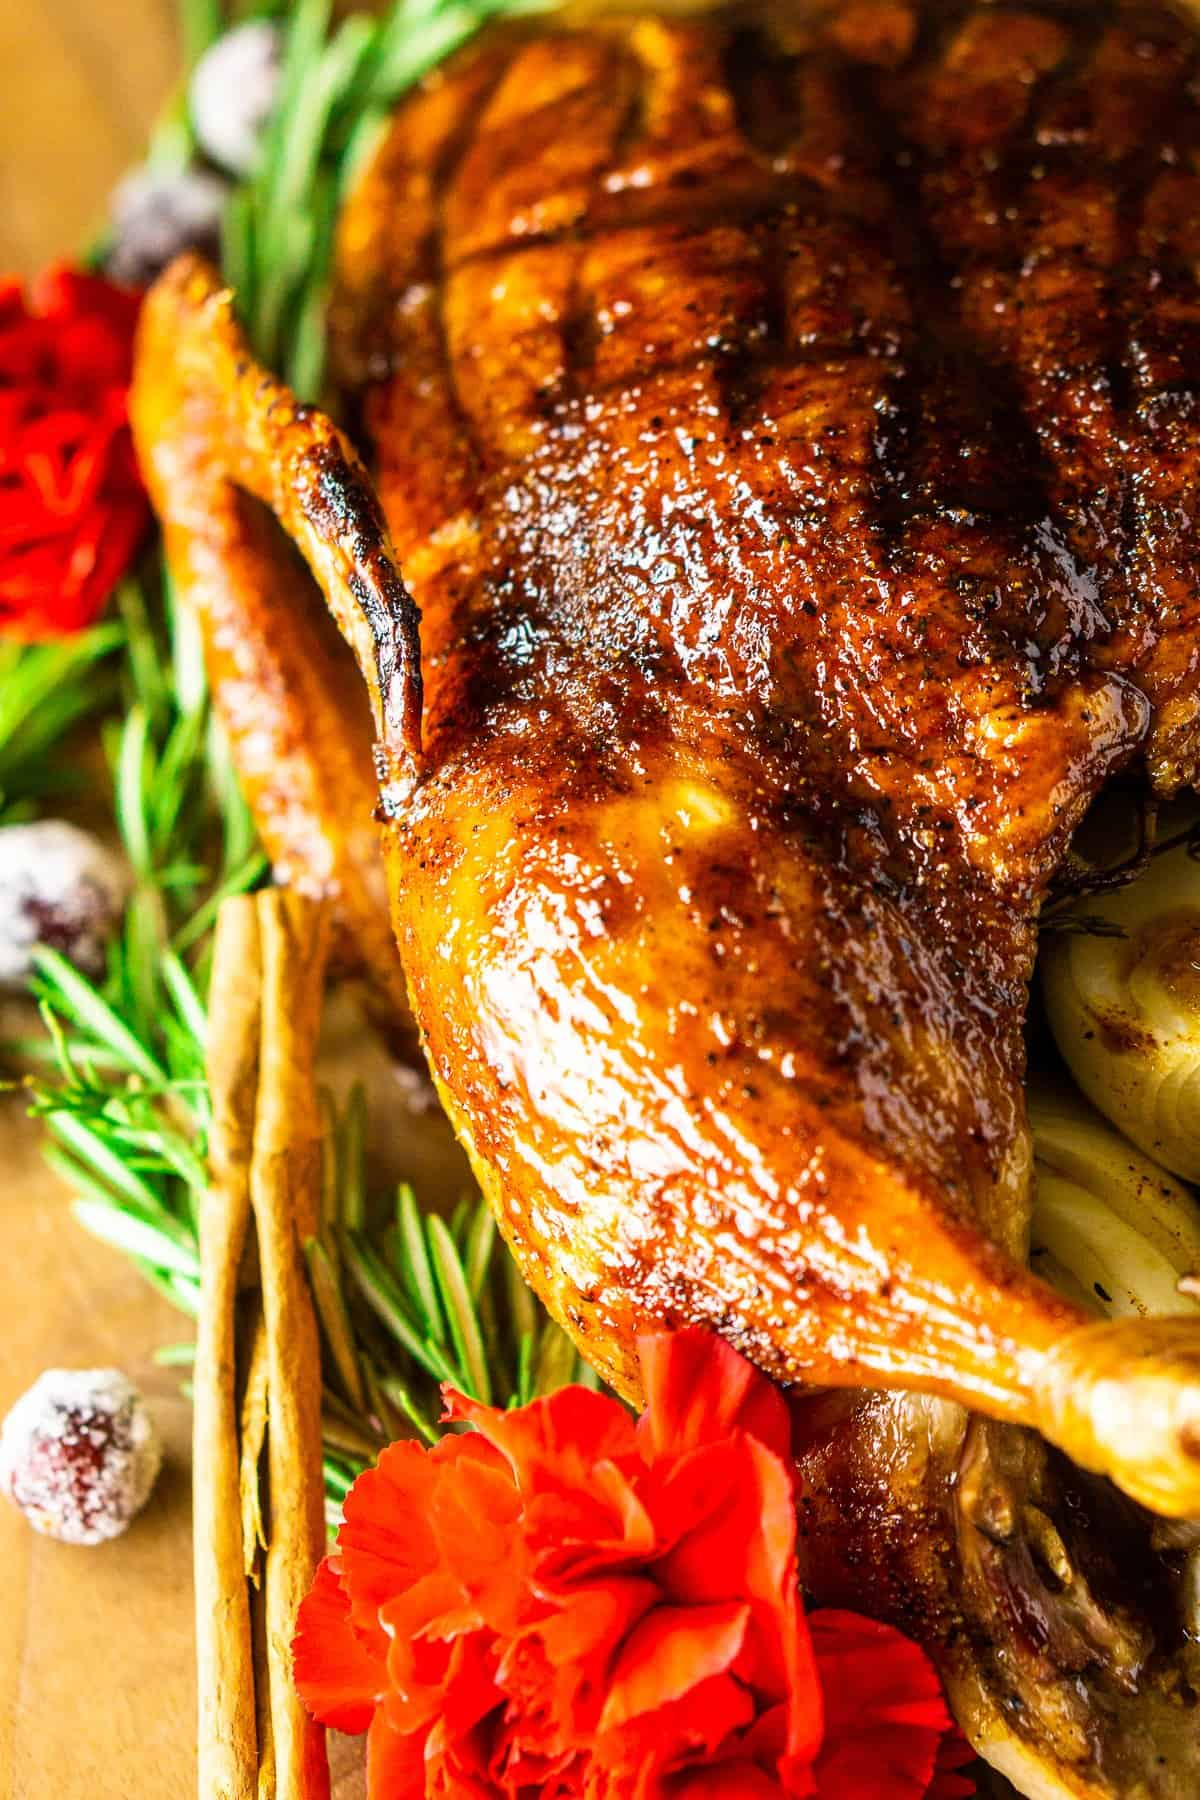 The Christmas roast duck with holiday decor around it on a cutting board.